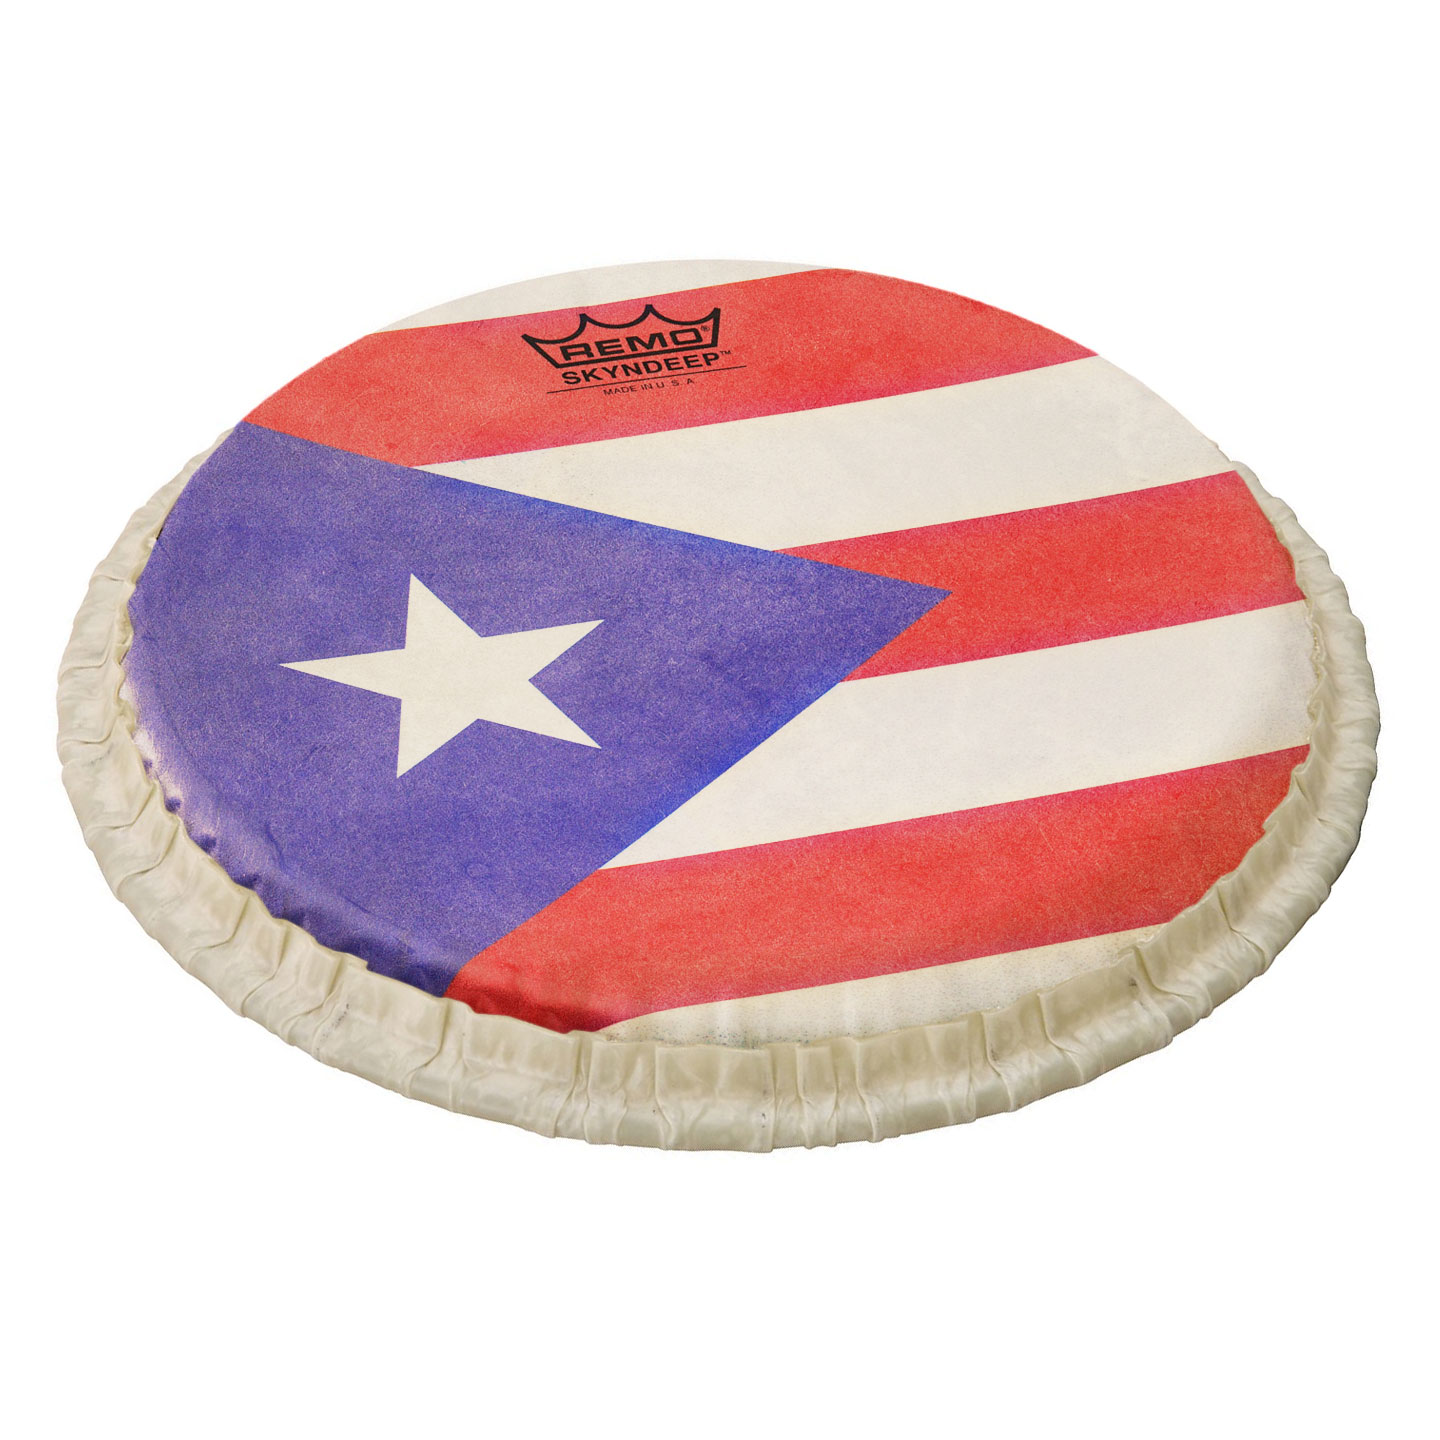 """Remo 11.75"""" Tucked Skyndeep Conga Drum Head with Puerto Rican Flag Graphic"""